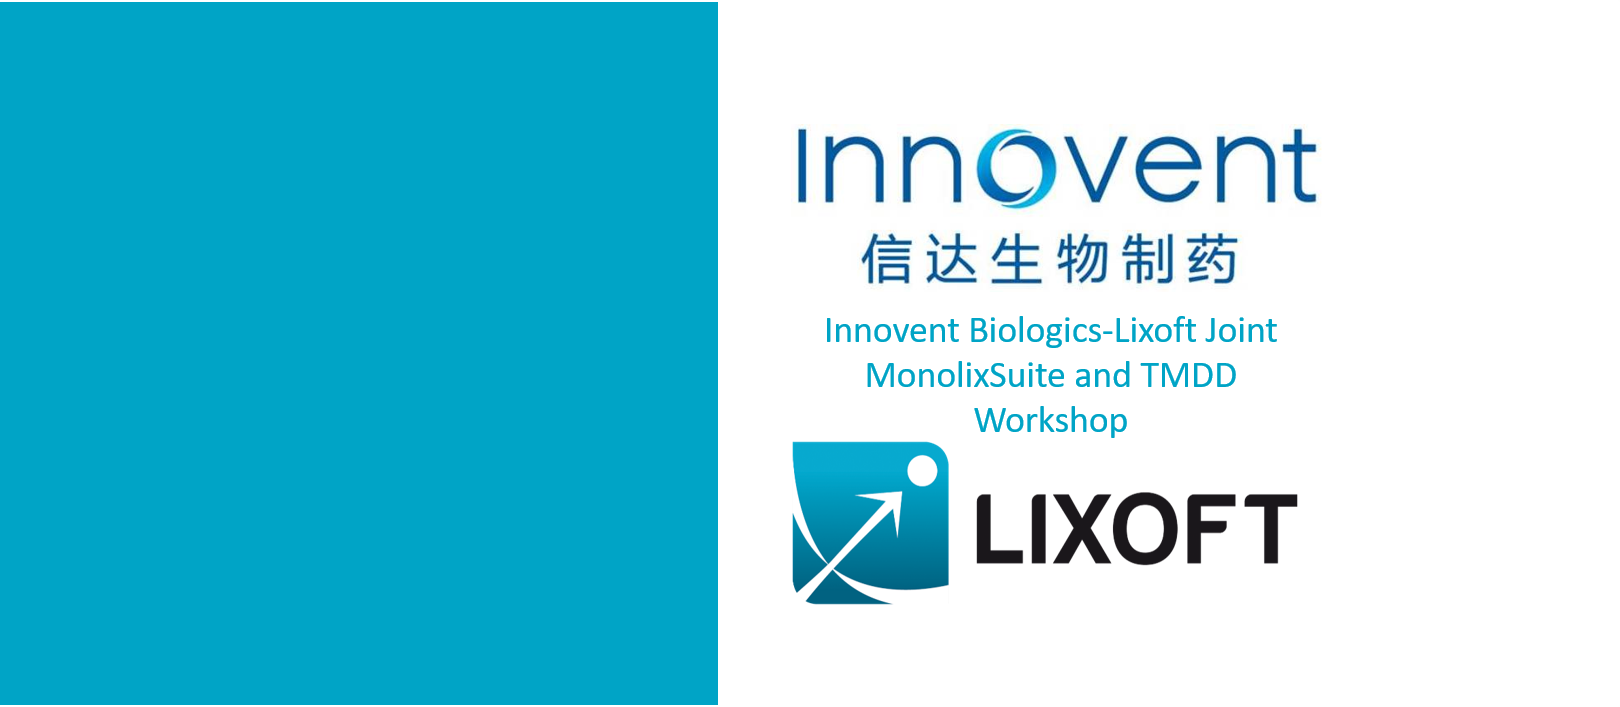 Innovent Biologics-Lixoft Joint MonolixSuite and TMDD Workshop